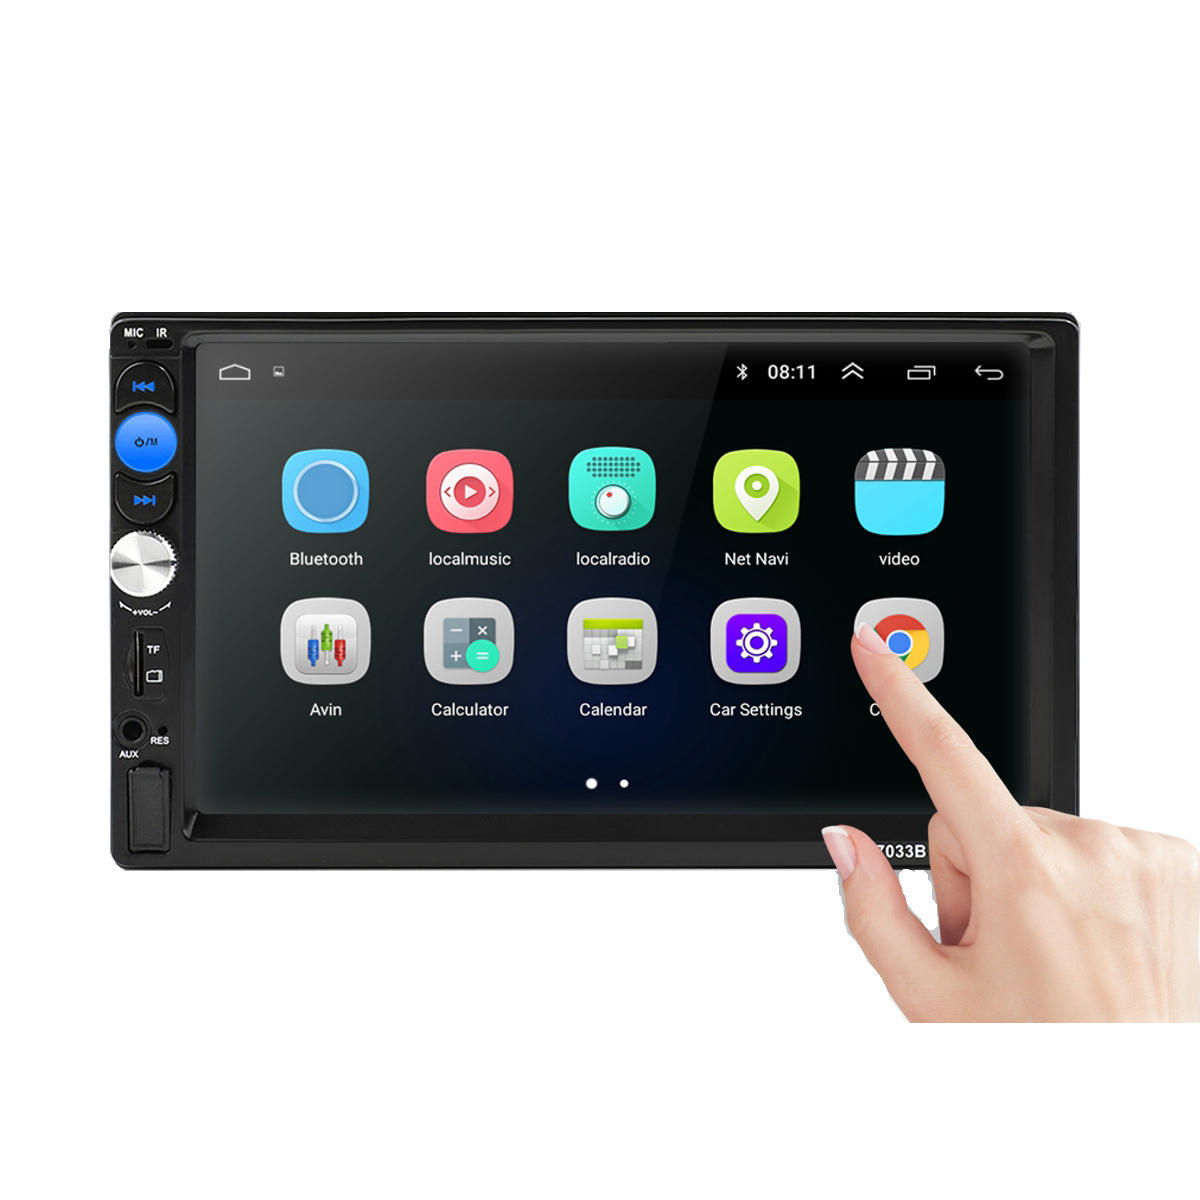 Android 8.1 7 inch Touch Screen Car MP5 Audio Video MP4 TF Card U Disk AUX bluetooth MP3 Player Radio